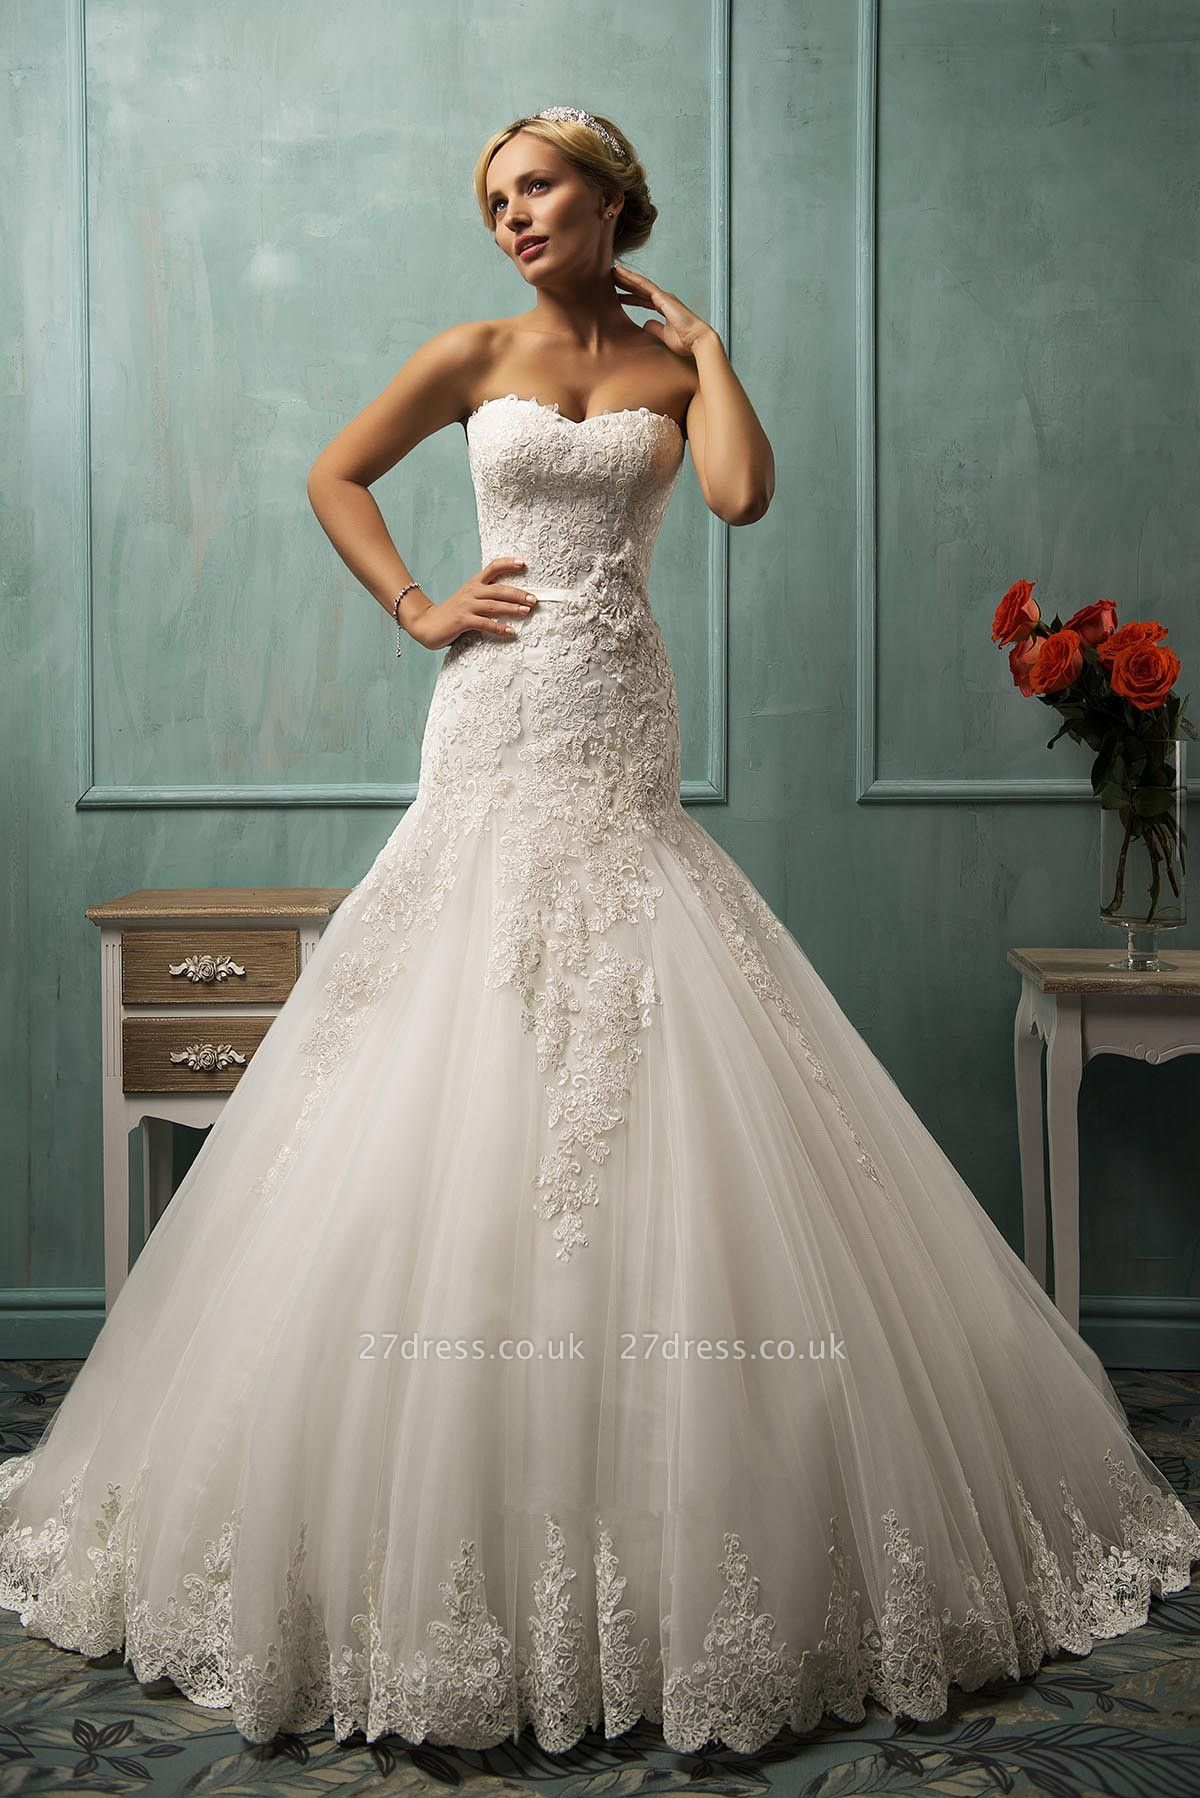 Elegant Sweetheart Sleeveless Sexy Mermaid Wedding Dress With Lace Appliques